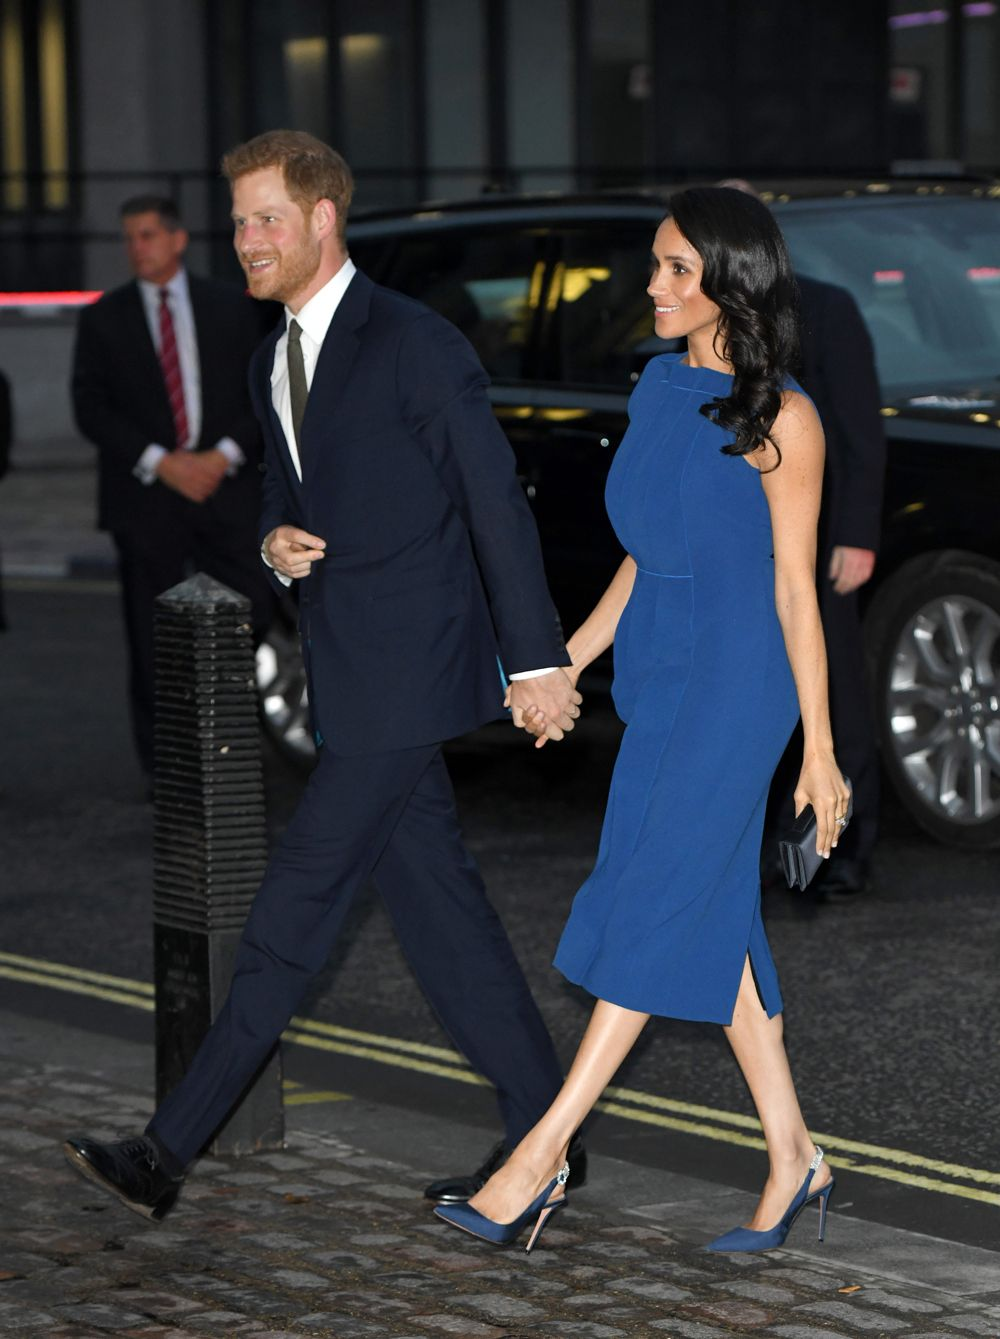 930ef6e05541 Meghan Markle's best style moments - what Meghan Markle is wearing